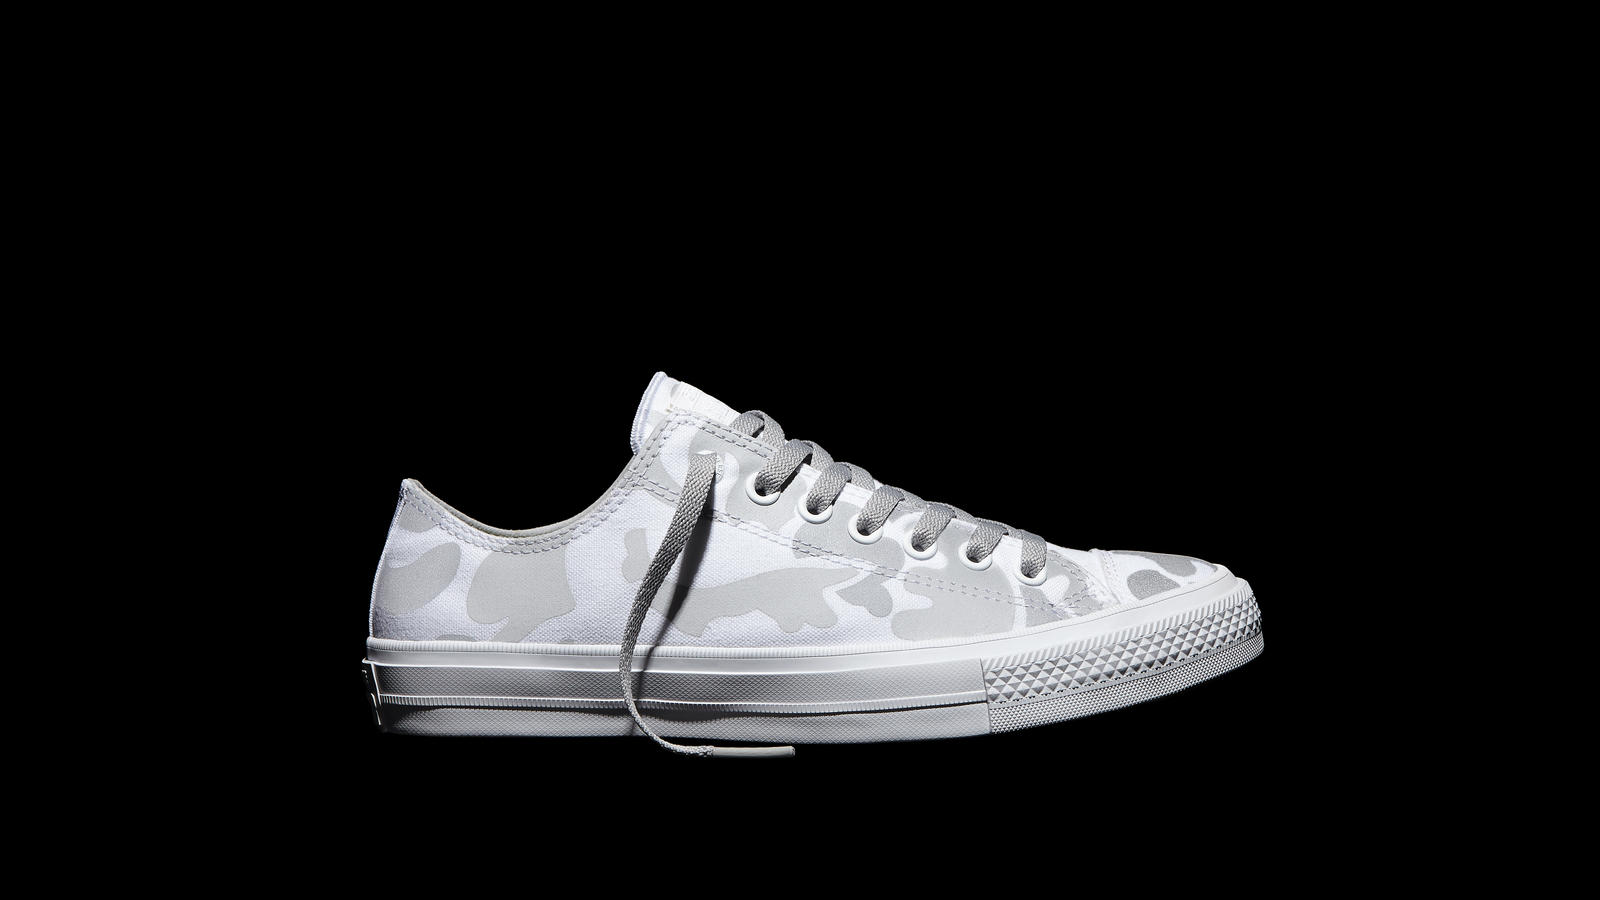 c44c4f424ec3 LIGHT UP THE NIGHT WITH NEW CHUCK II REFLECTIVE PRINT COLLECTION ...